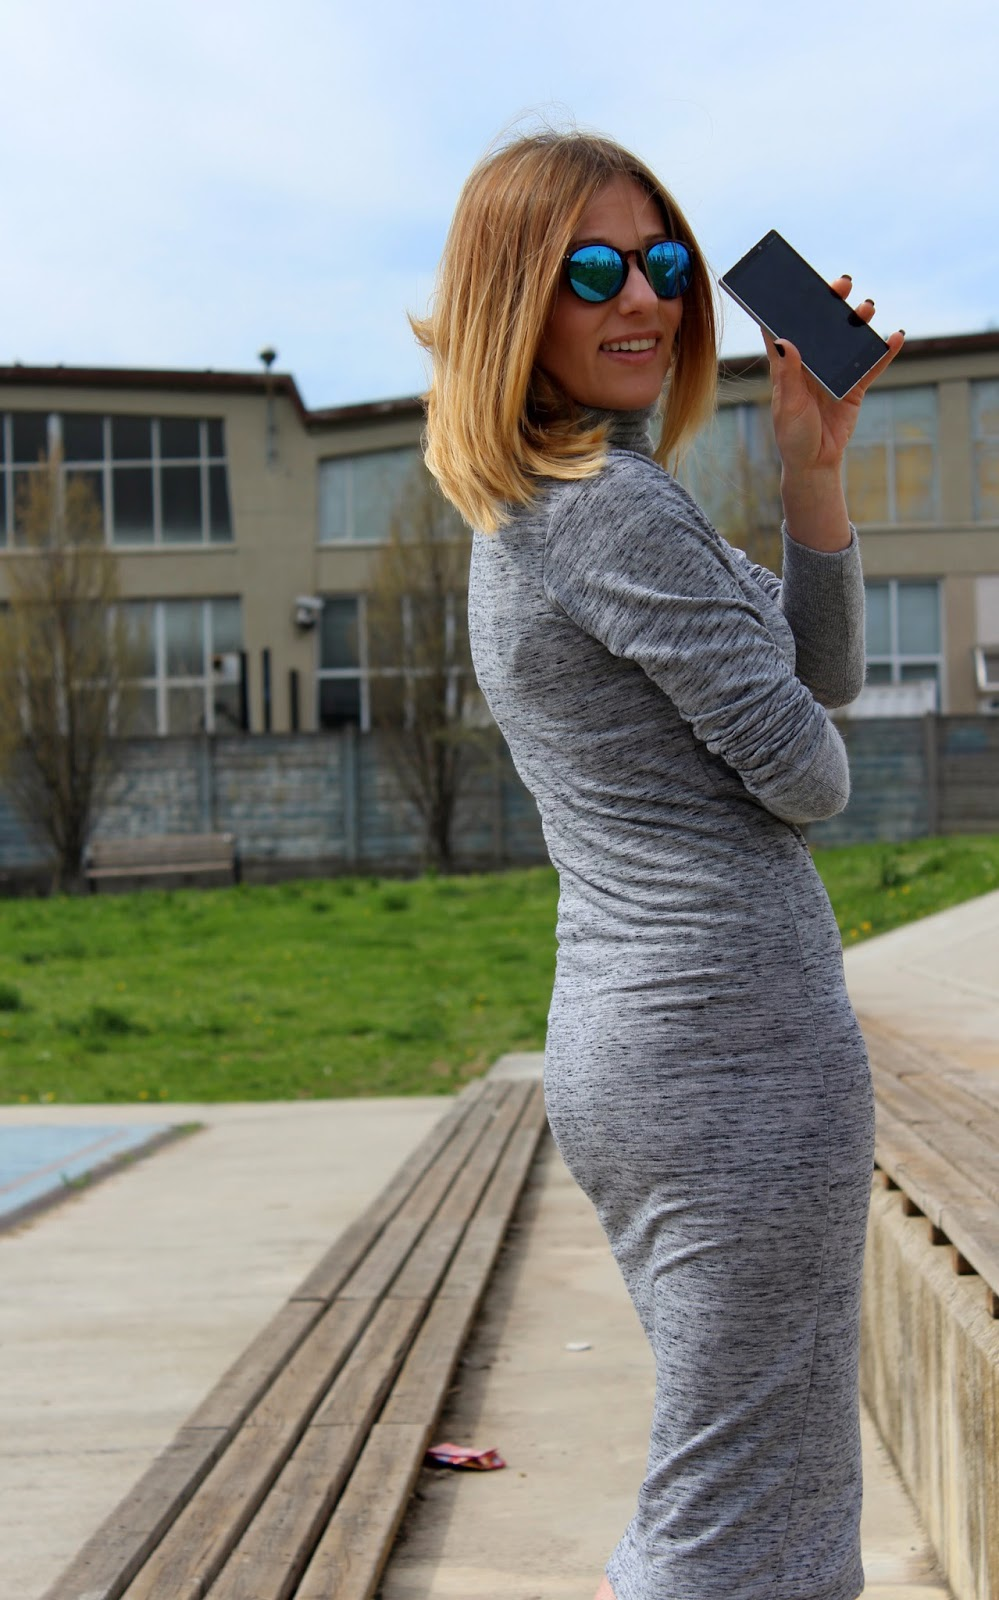 Eniwhere Fashion - Gray dress and leather jacket - Nokia Lumia 930